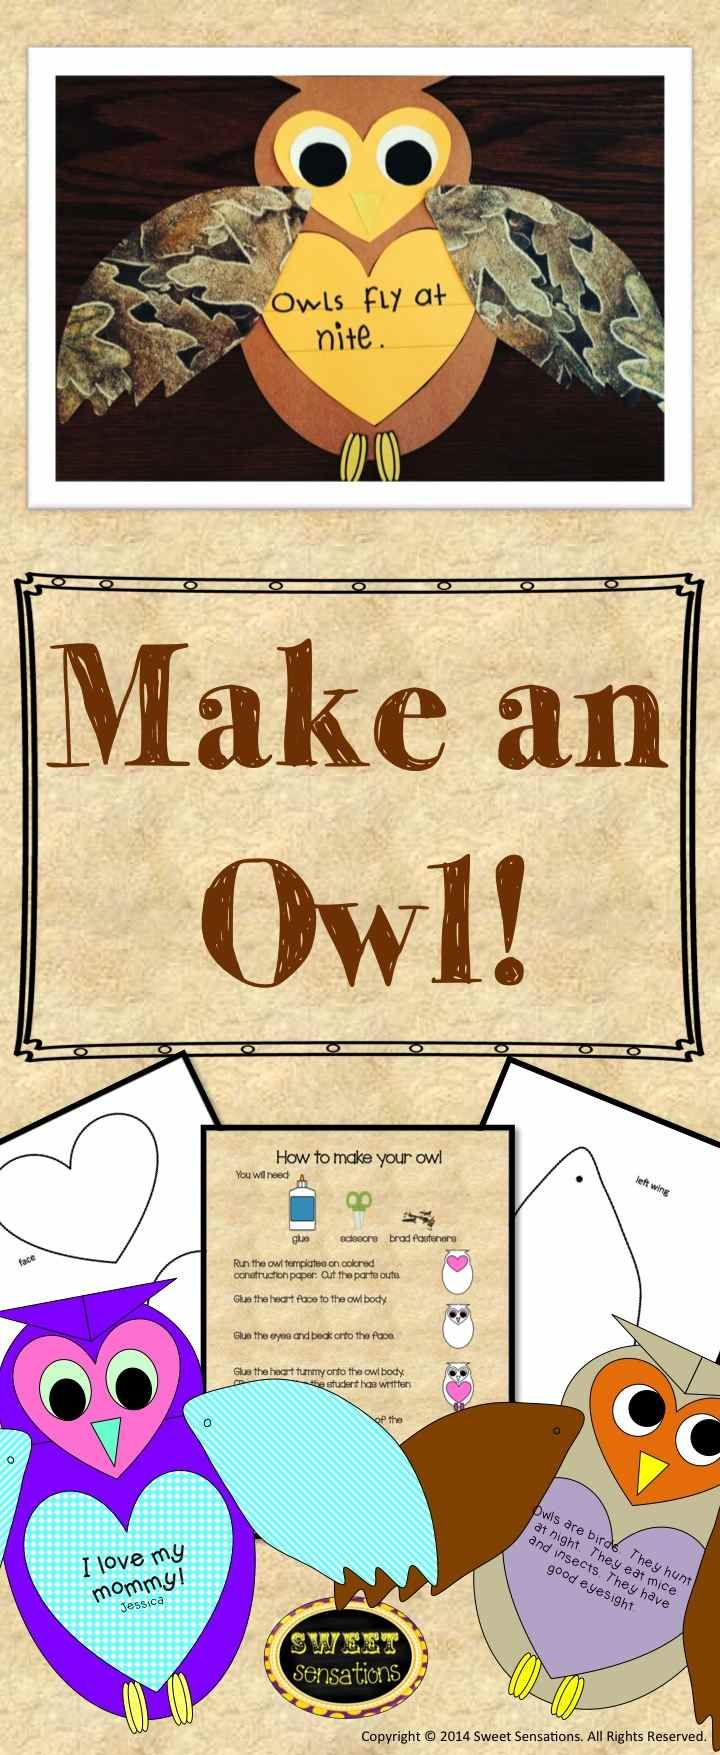 This pack contains templates and directions to make cute craft owls. Run on construction paper or scrapbook paper and let students create their new breed of owl! A perfect fall activity and not a ghost or witch in sight!